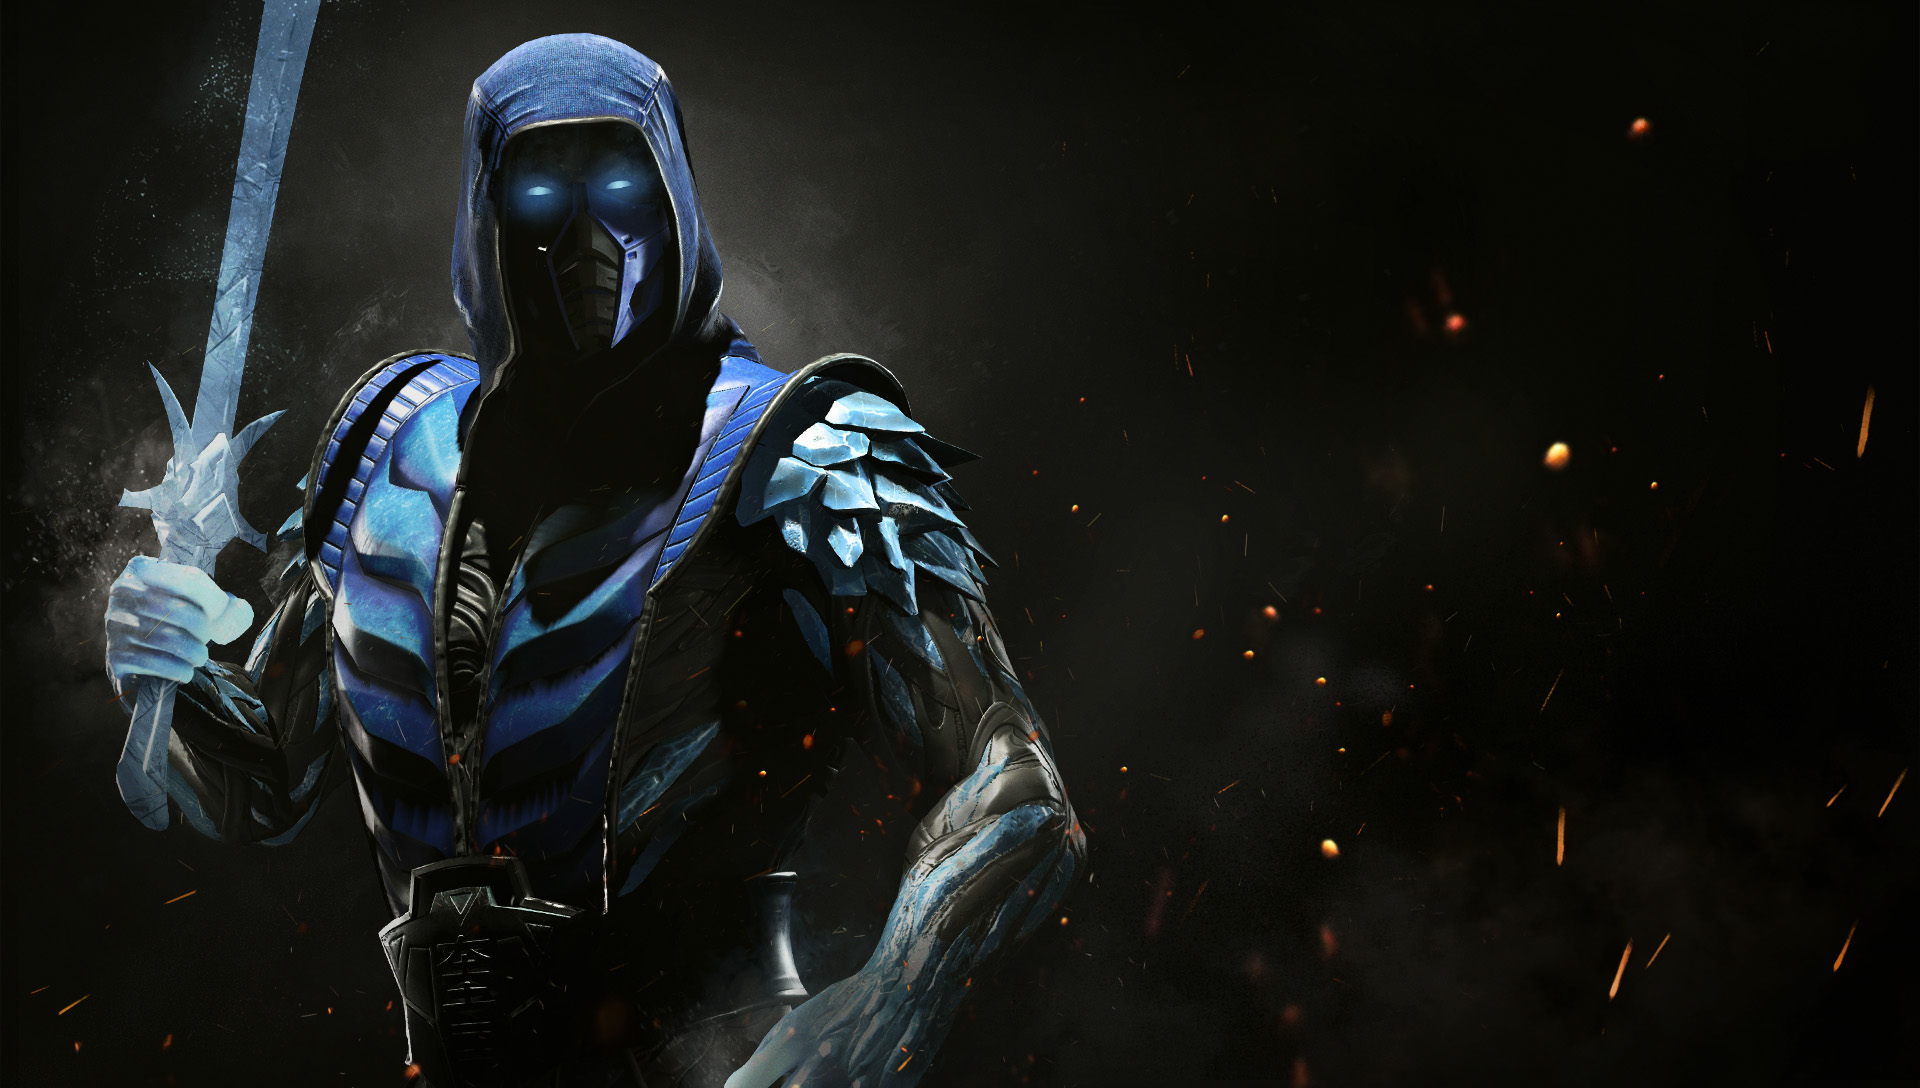 Sub-Zero's Injustice 2 Appearance Dated